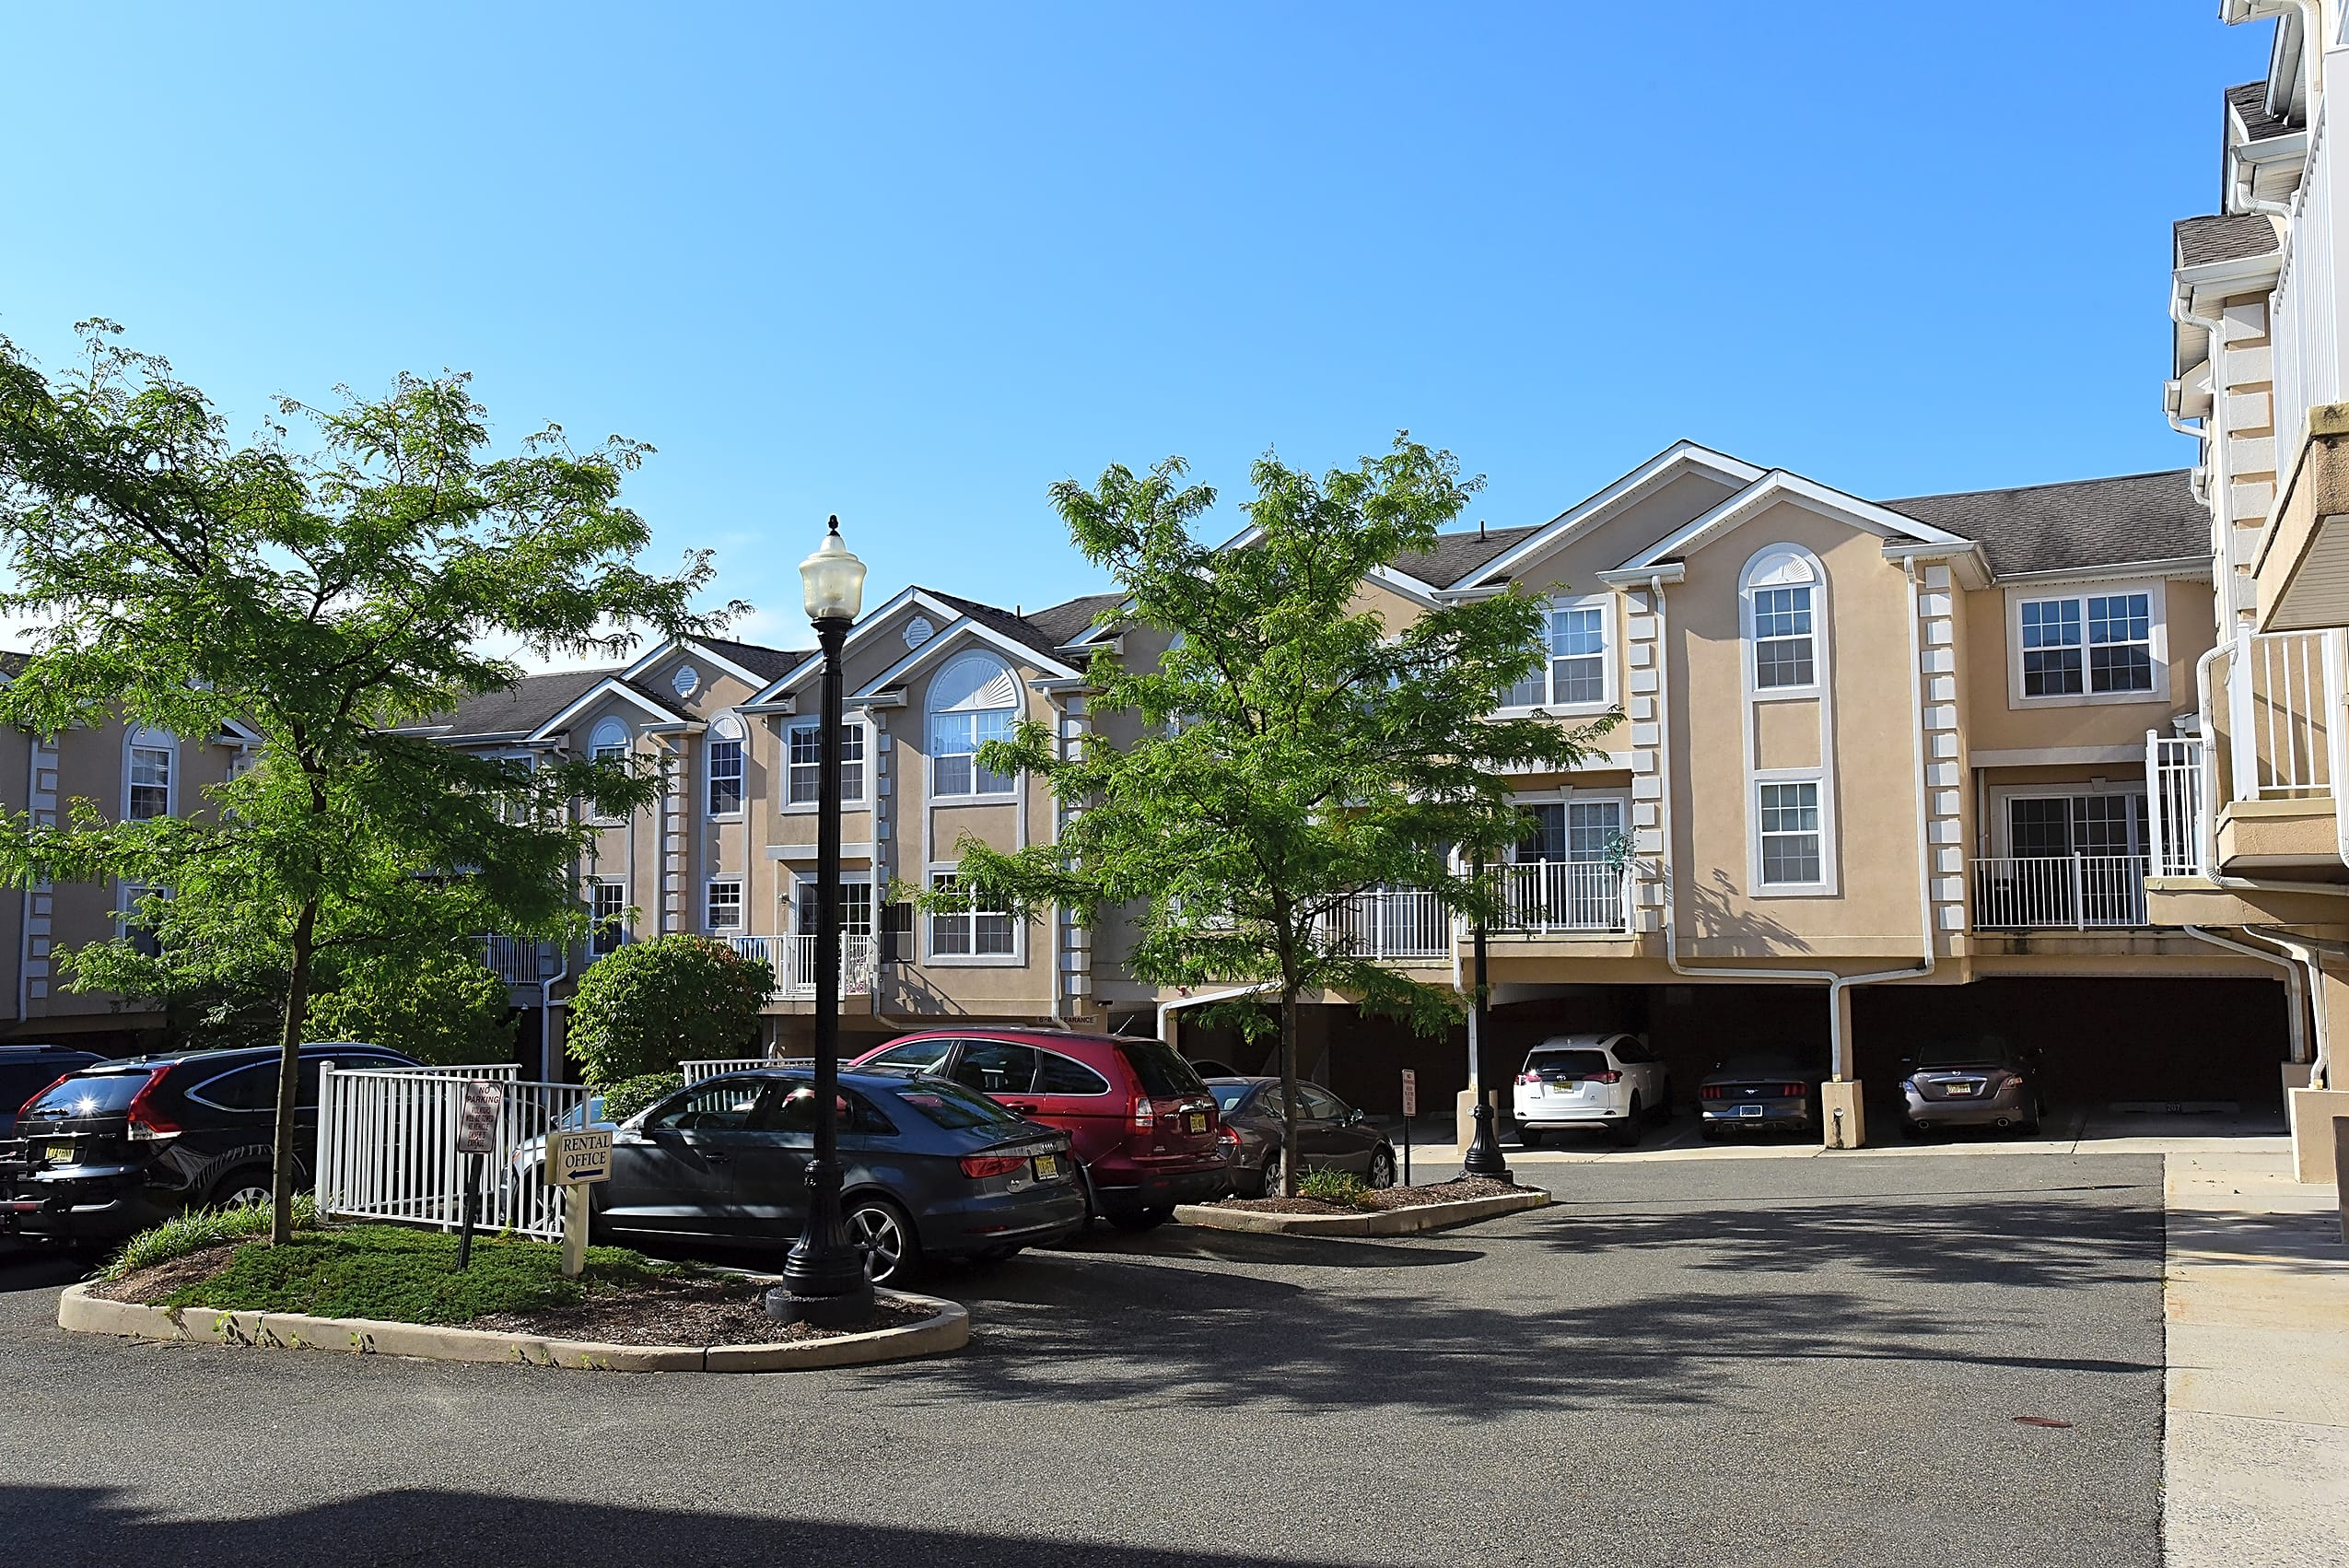 Apartments Near Felician Liberty Terrace for Felician College Students in Lodi, NJ